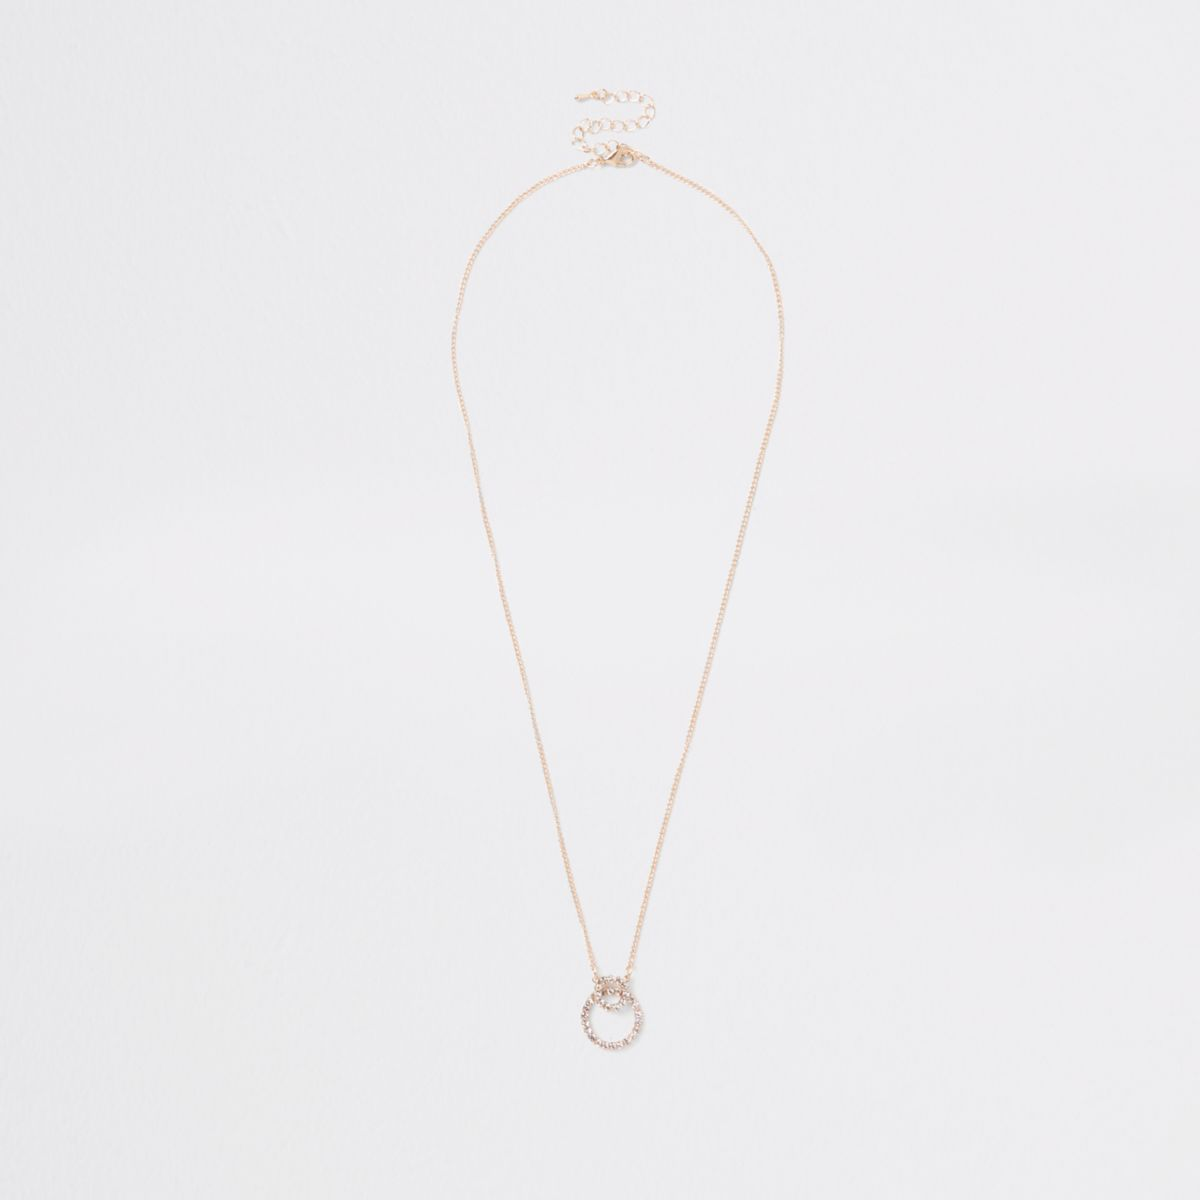 Gold tone interlinked circle pendant necklace